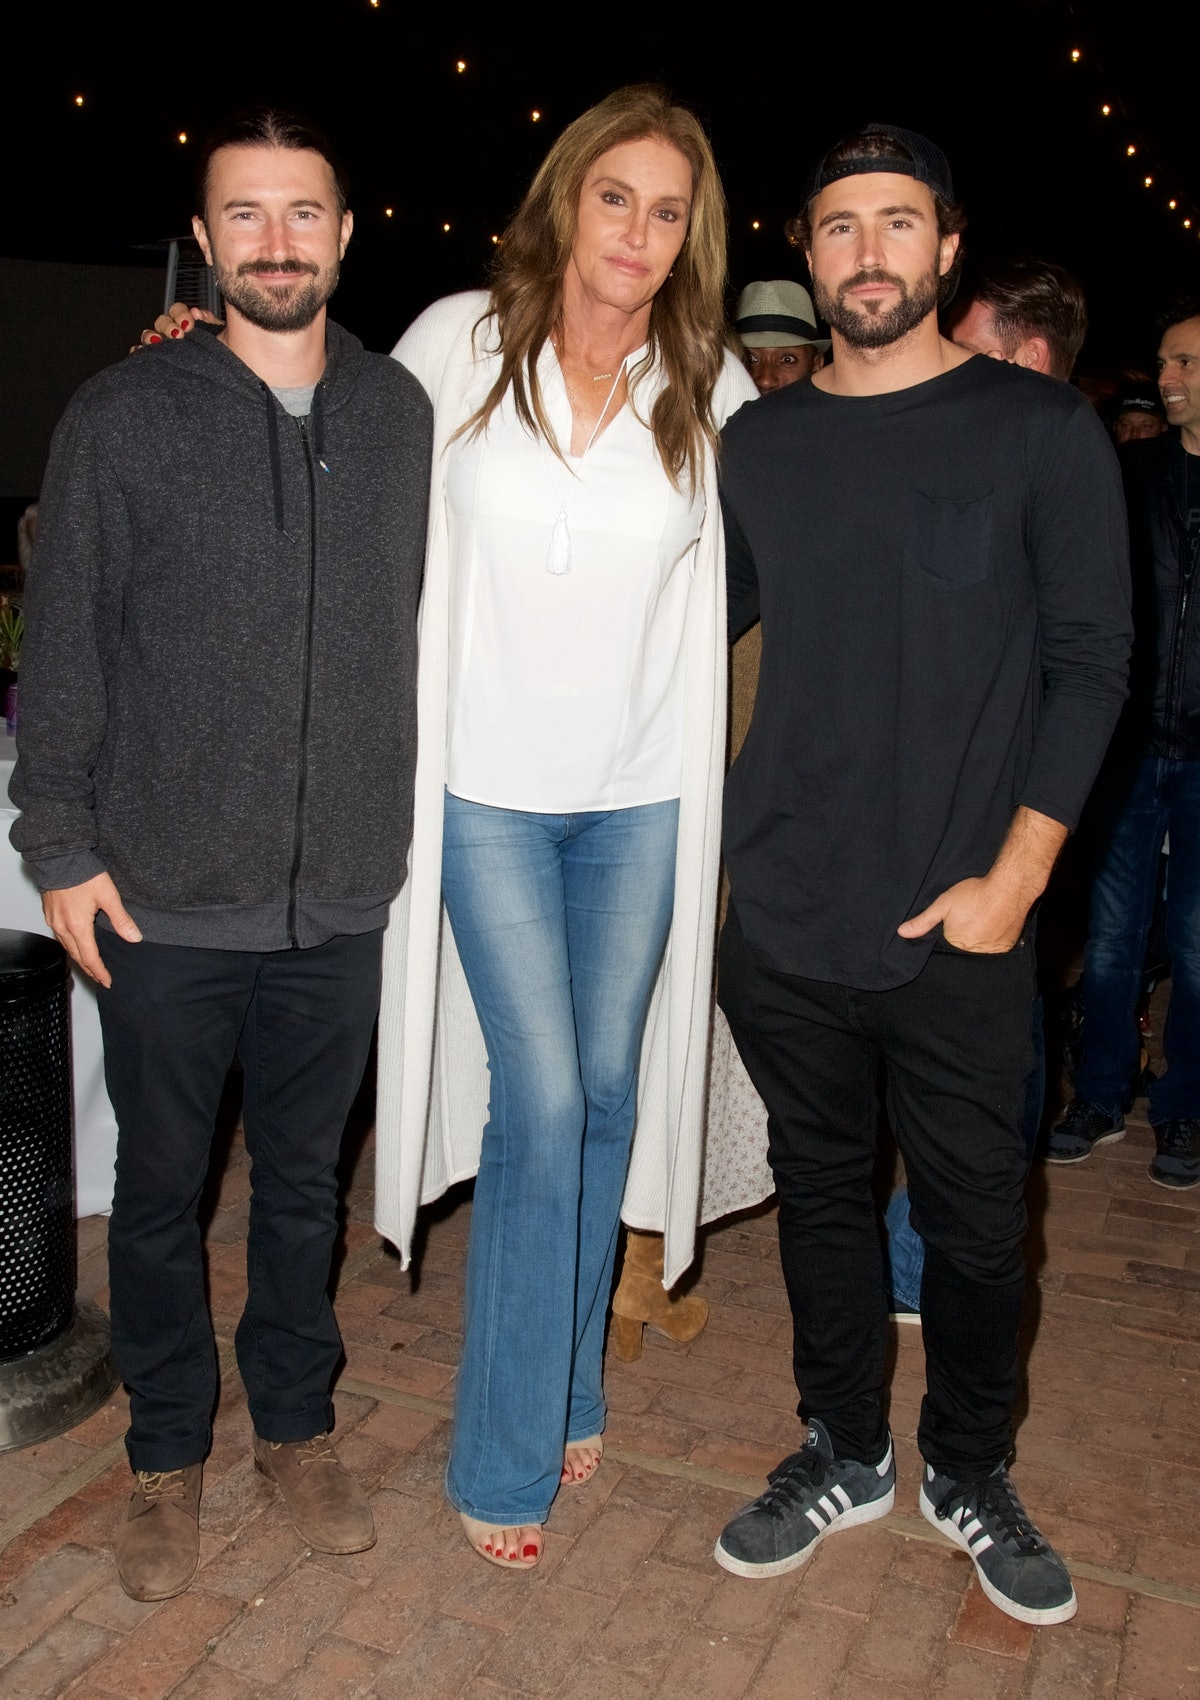 """MALIBU, CA - NOVEMBER 19:  (L-R) Brandon Jenner, Caitlyn Jenner and Brody Jenner attend the Brandon Jenner Record Release Party For """"Burning Ground"""" on November 19, 2016 in Malibu, California.  (Photo by Earl Gibson III/Getty Images)"""